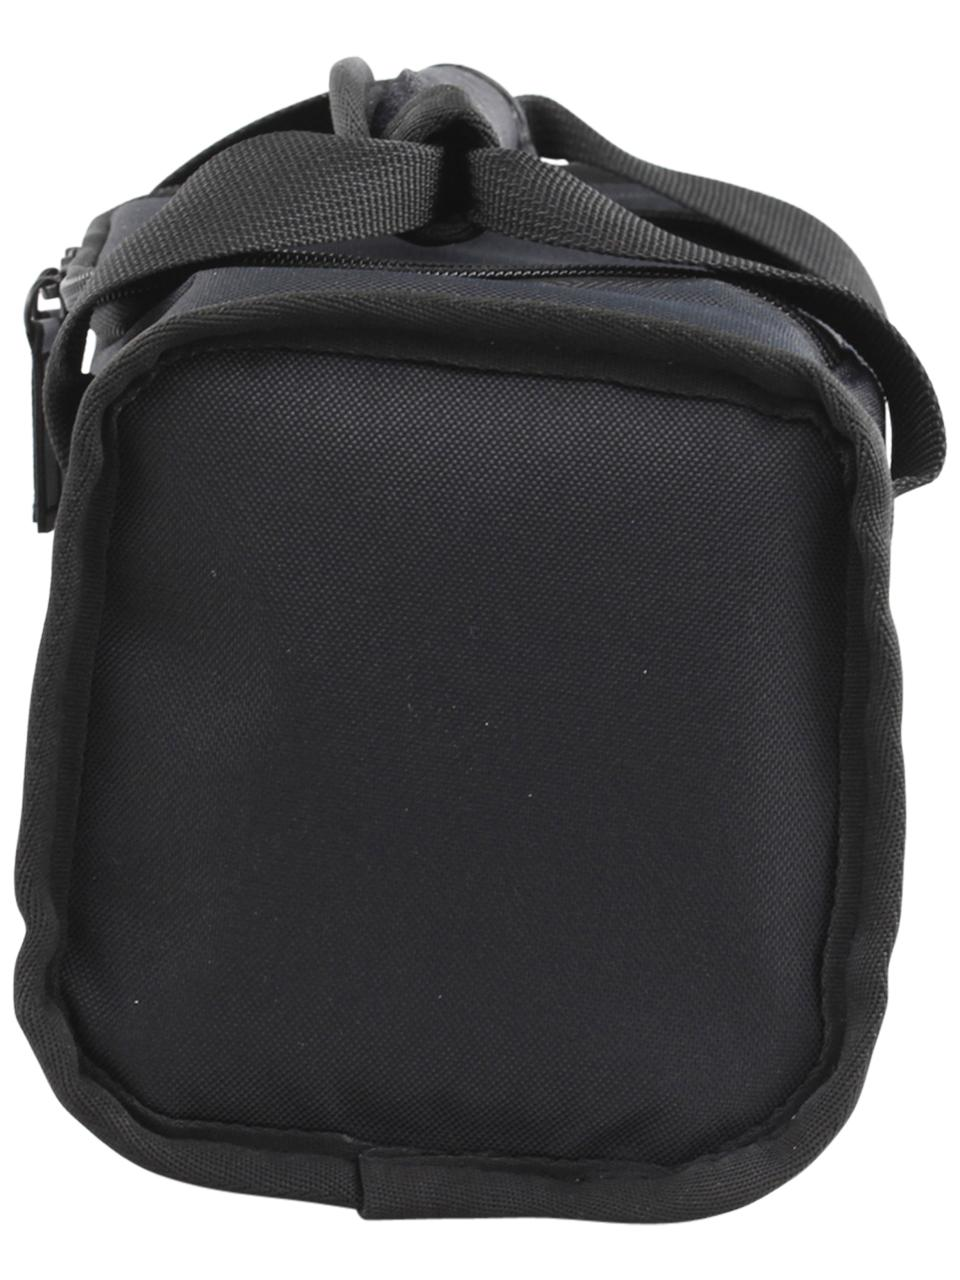 Nike-Deluxe-Insulated-Tote-Lunch-Bag thumbnail 13